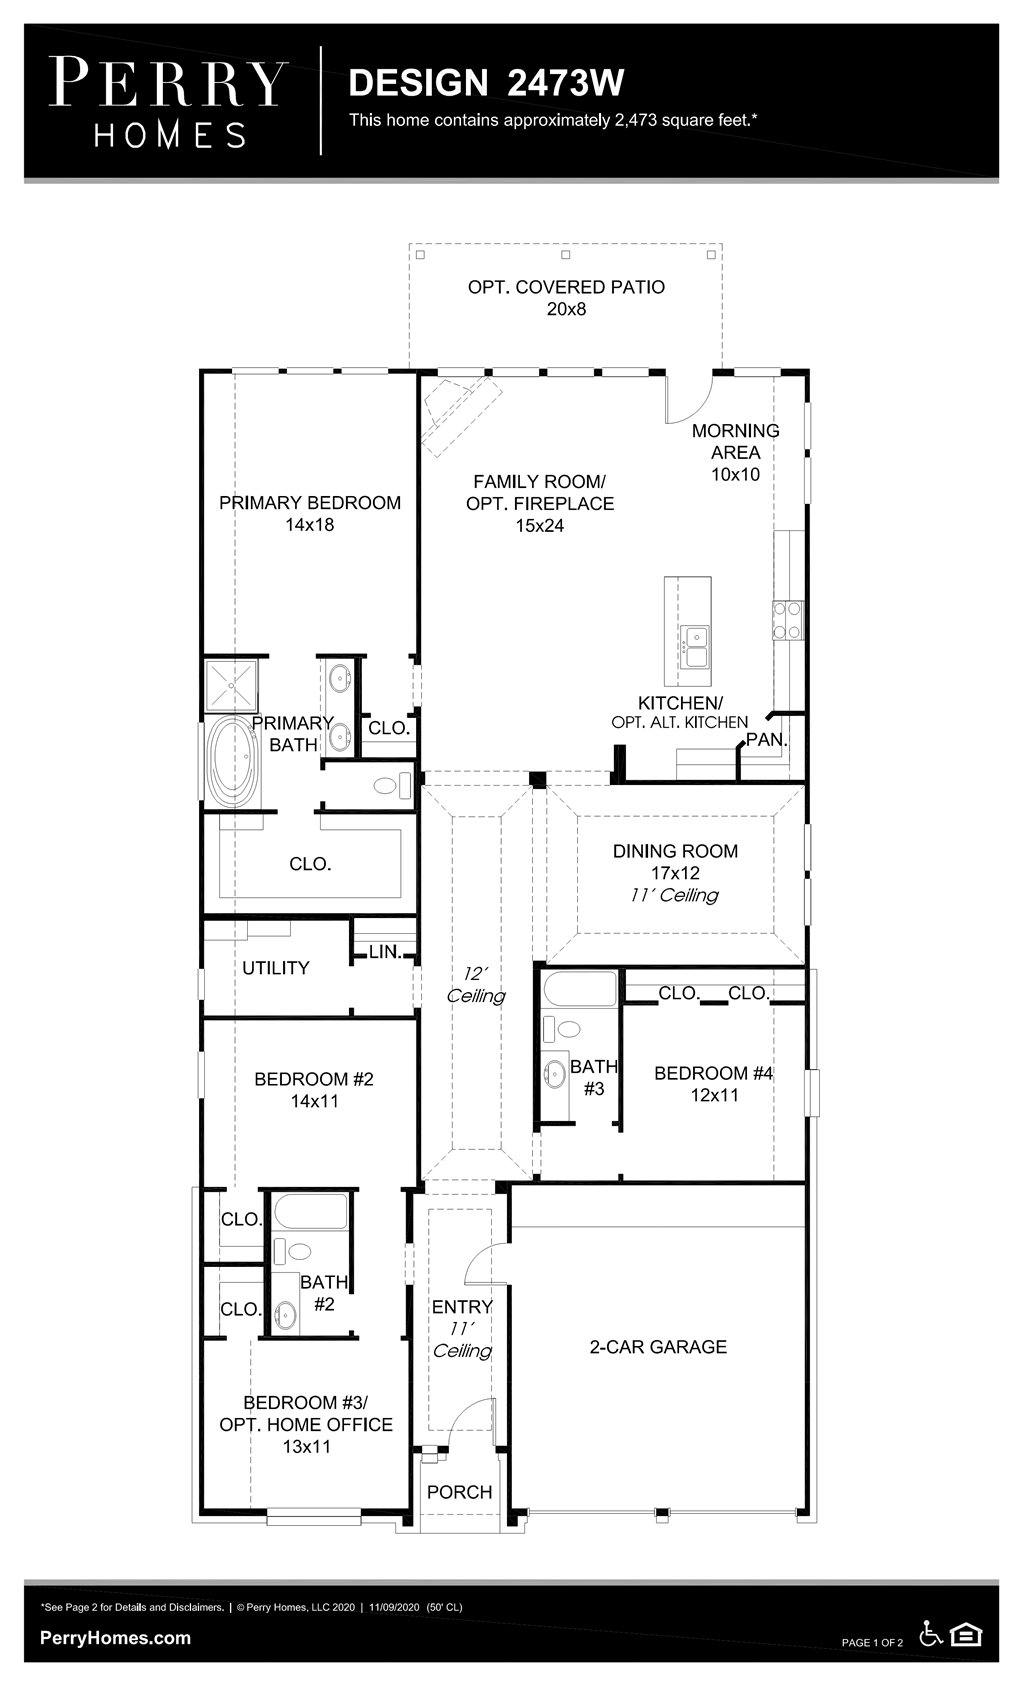 Floor Plan for 2473W